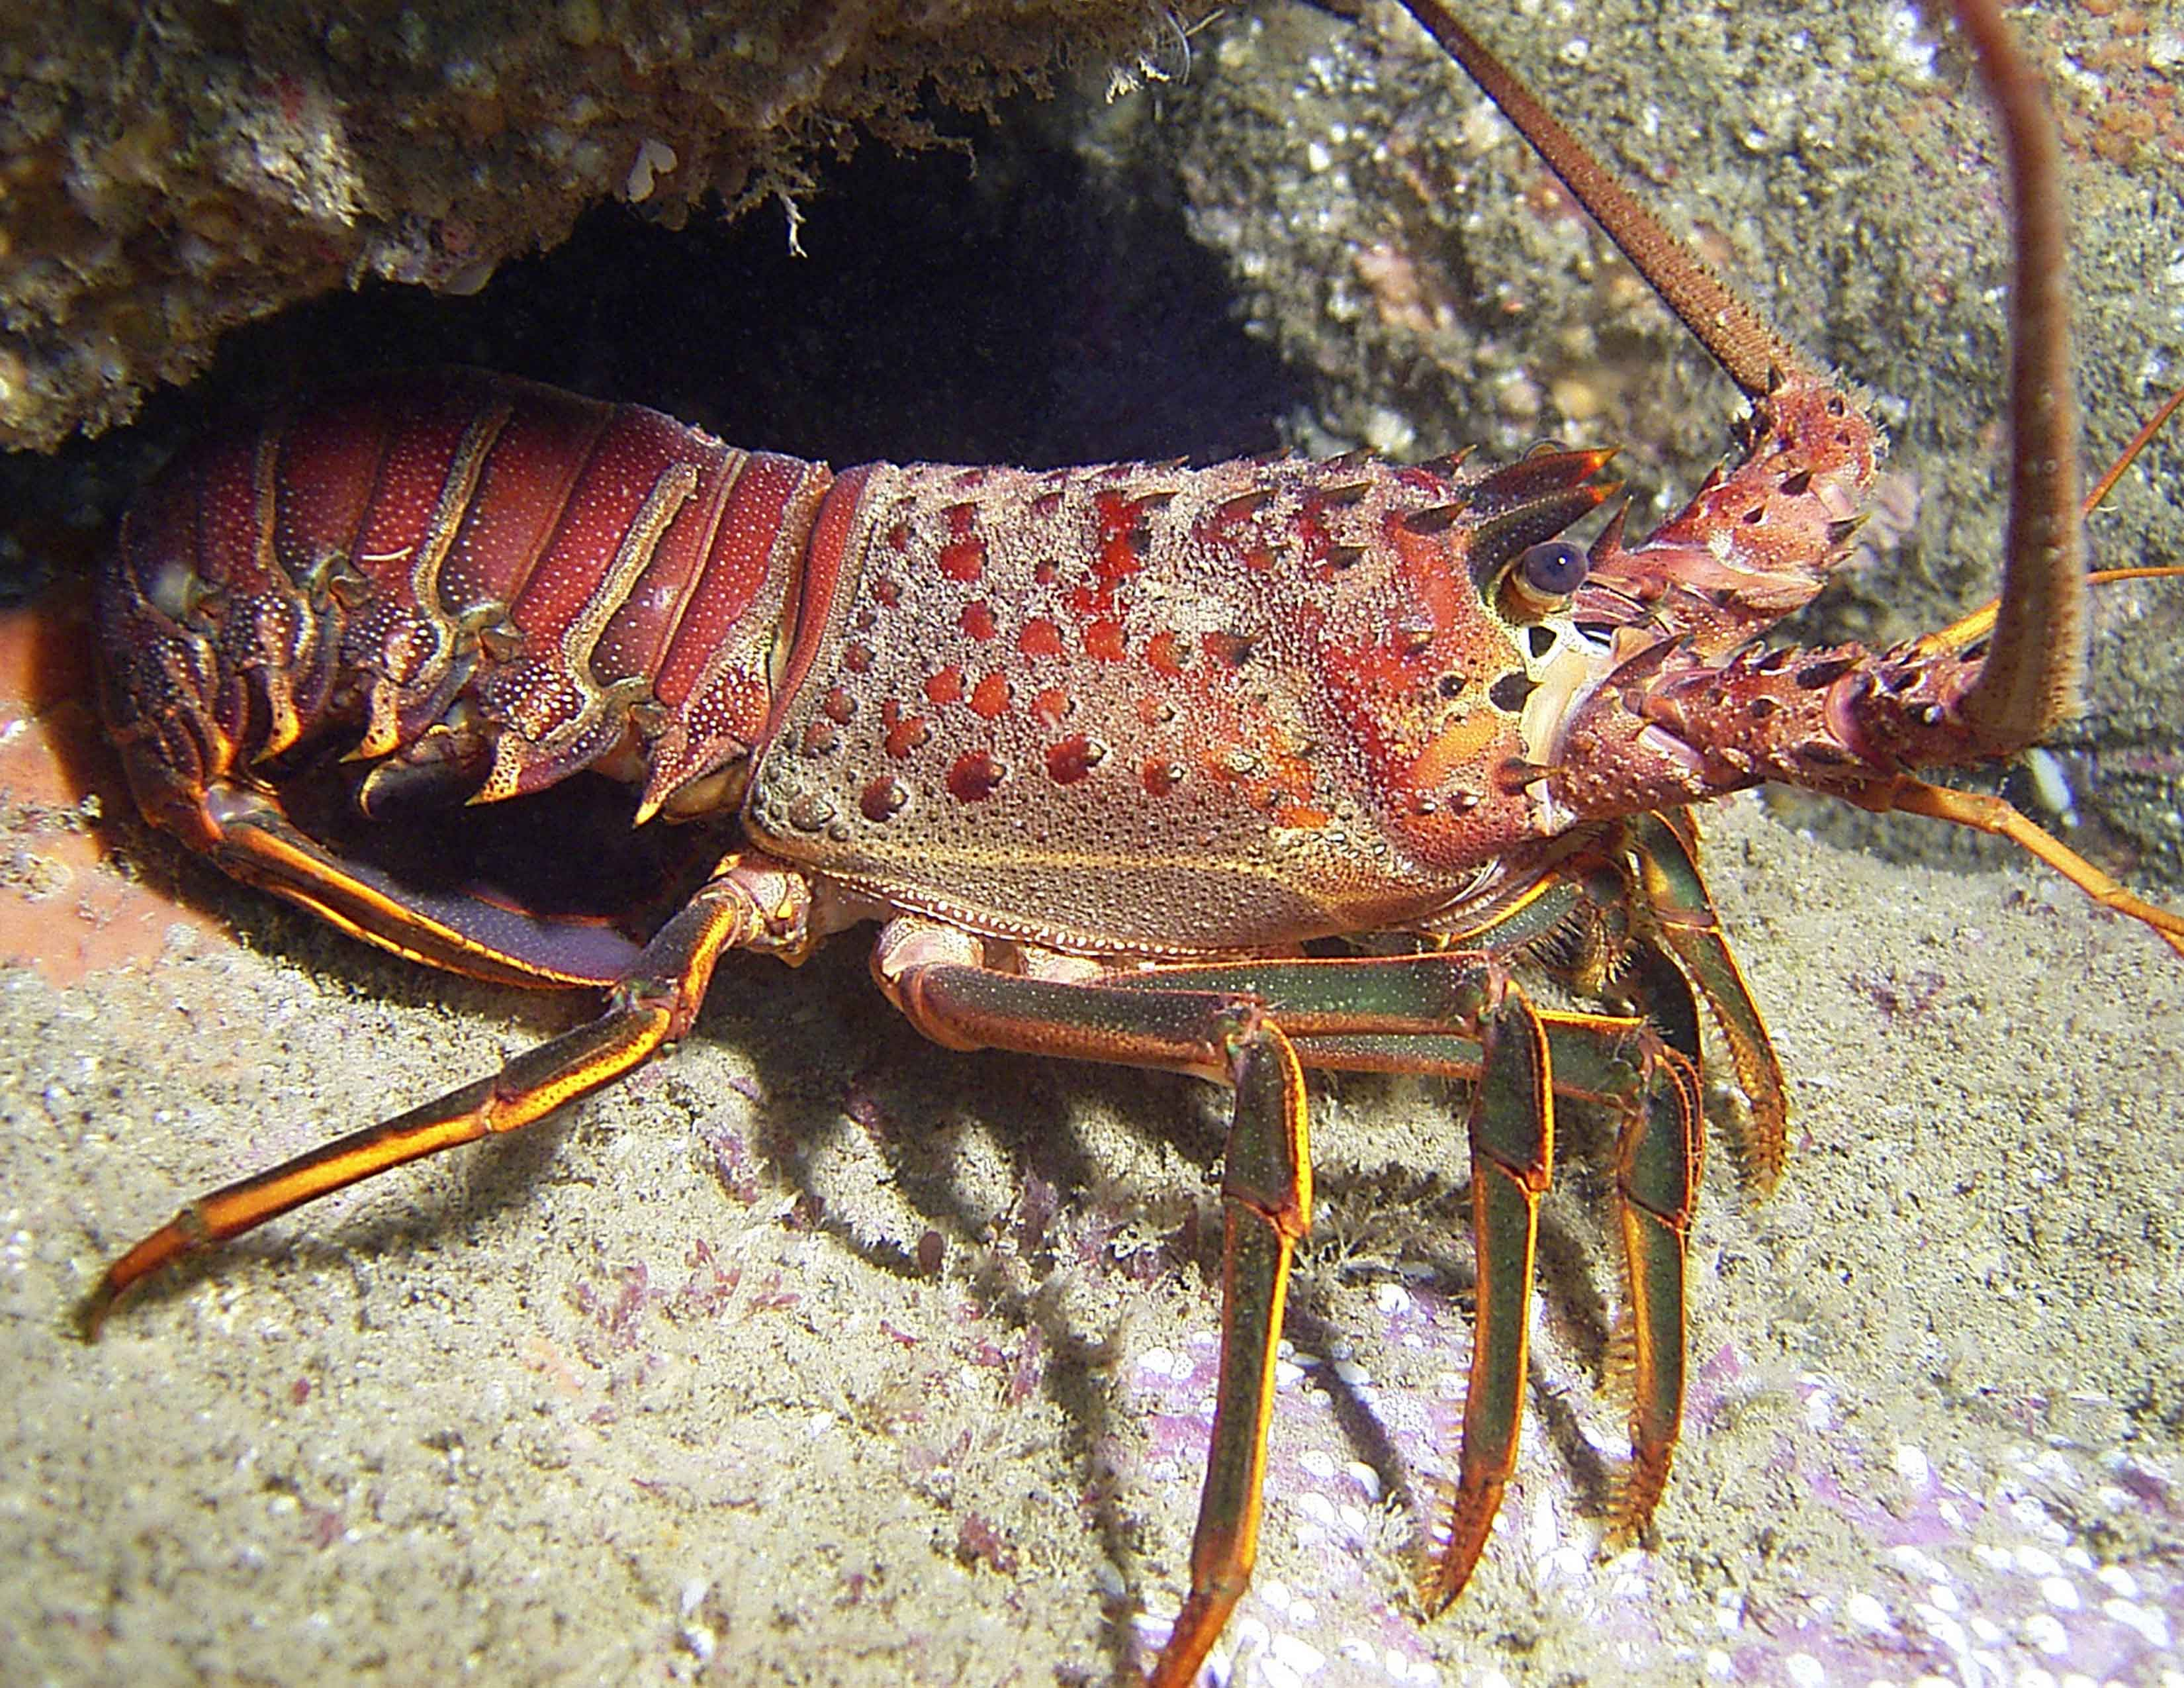 Lobsters Underwater Images & Pictures - Becuo